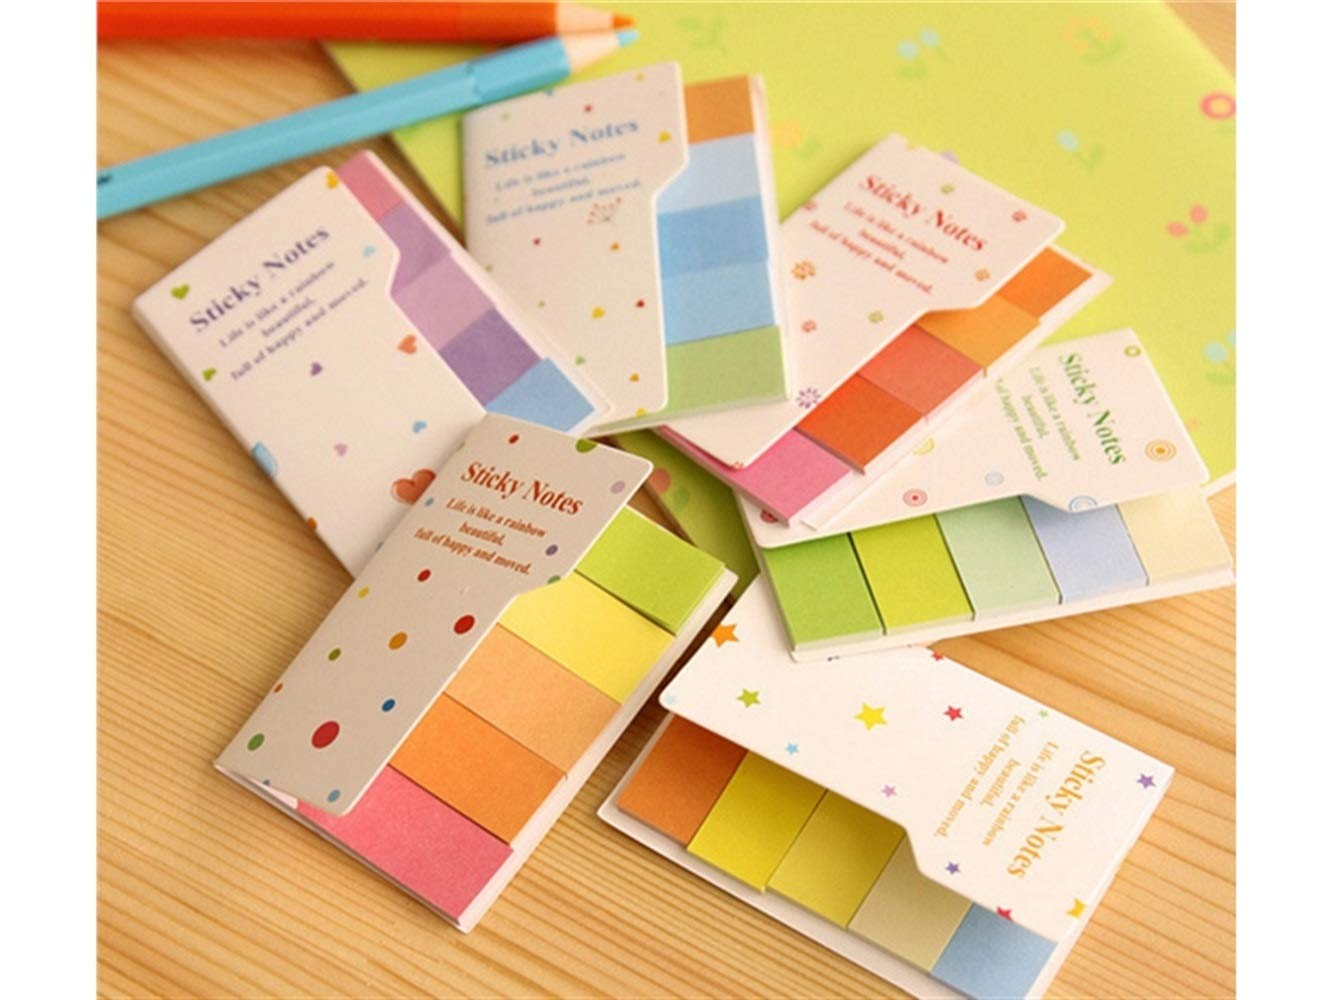 Perfect for Gift Rainbow Marker Bookmark Sticker Paste Tab Sticky Notes-Random Cute Looking FOUGNOGKISSS